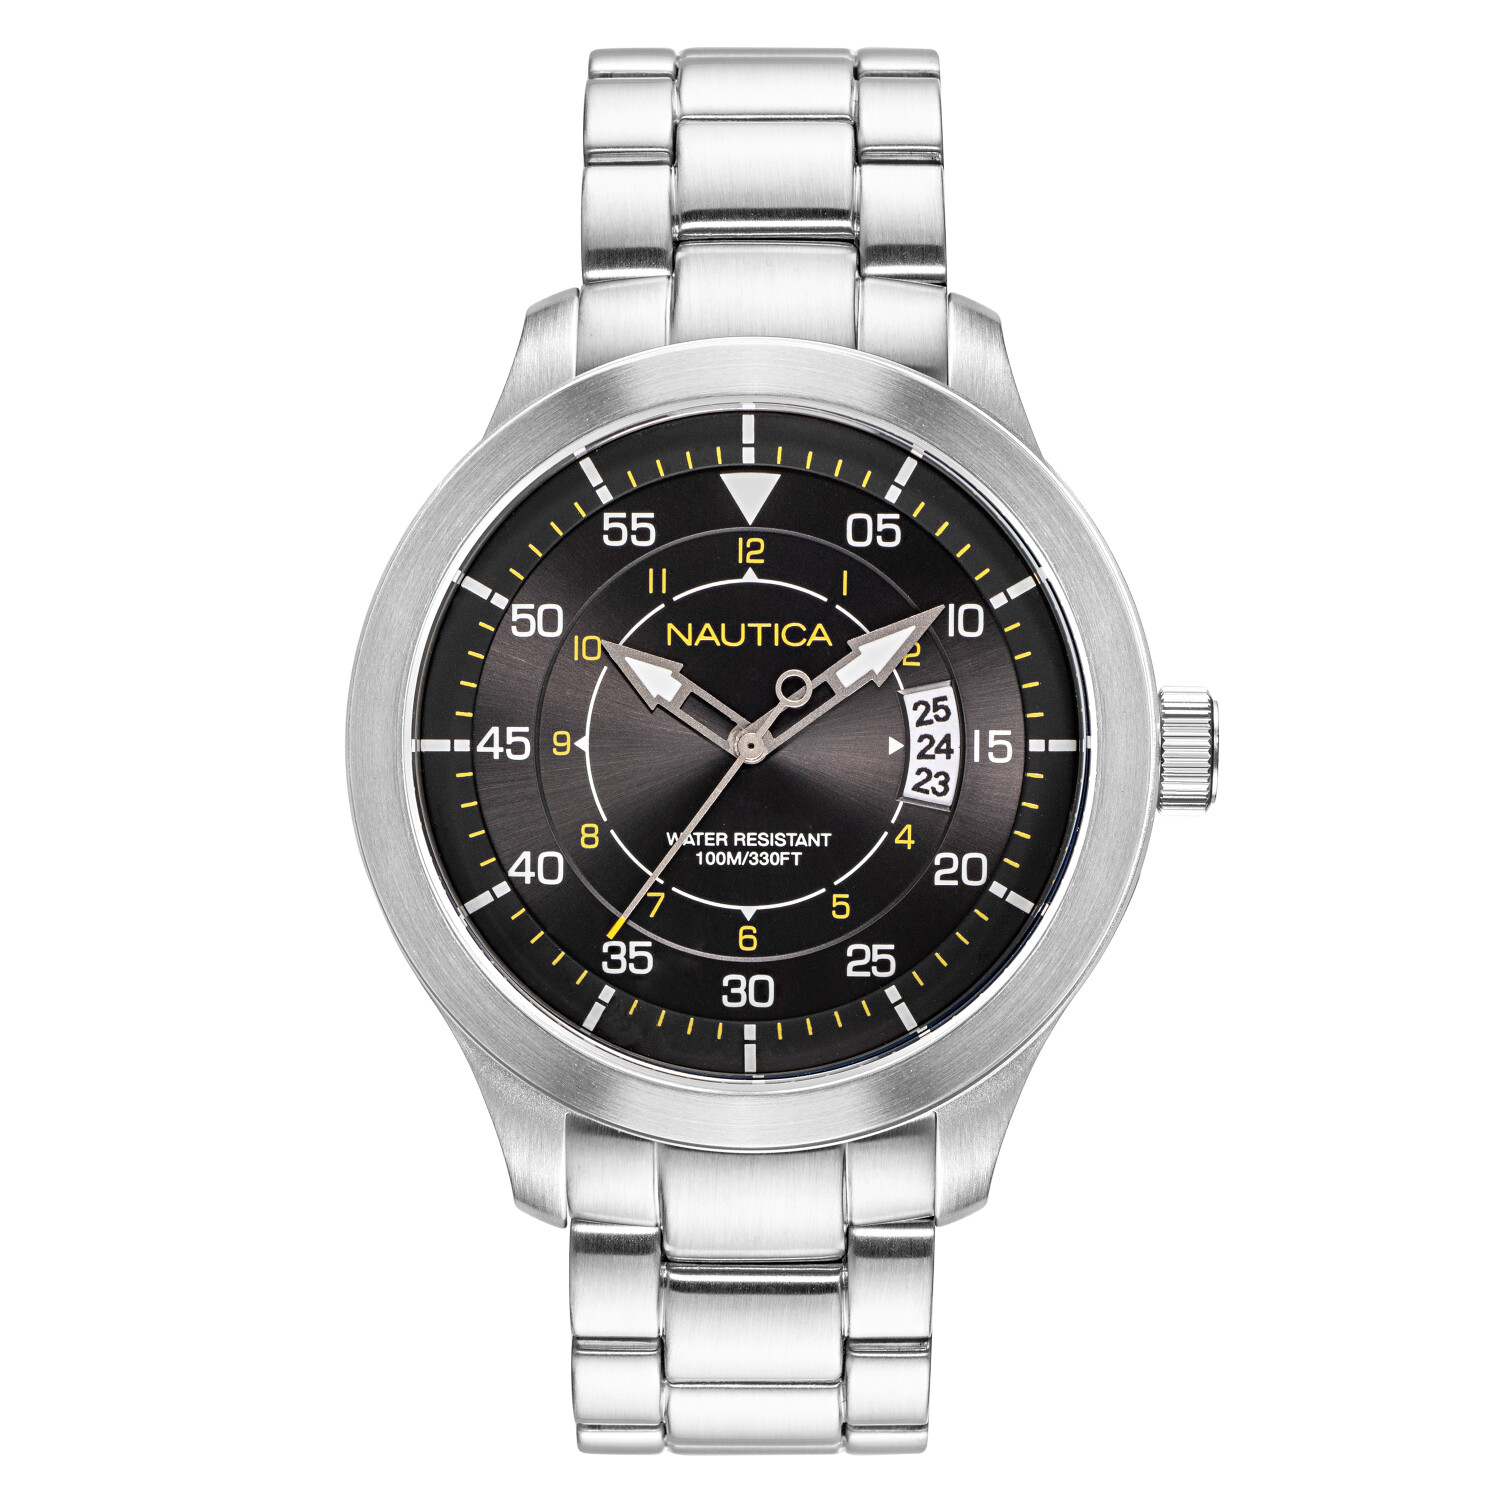 Nautica Watch NAPPLP907 Point Loma Analog, Water Resistant, Date Display, Luminous Hands, Stainless Steel Band, Black